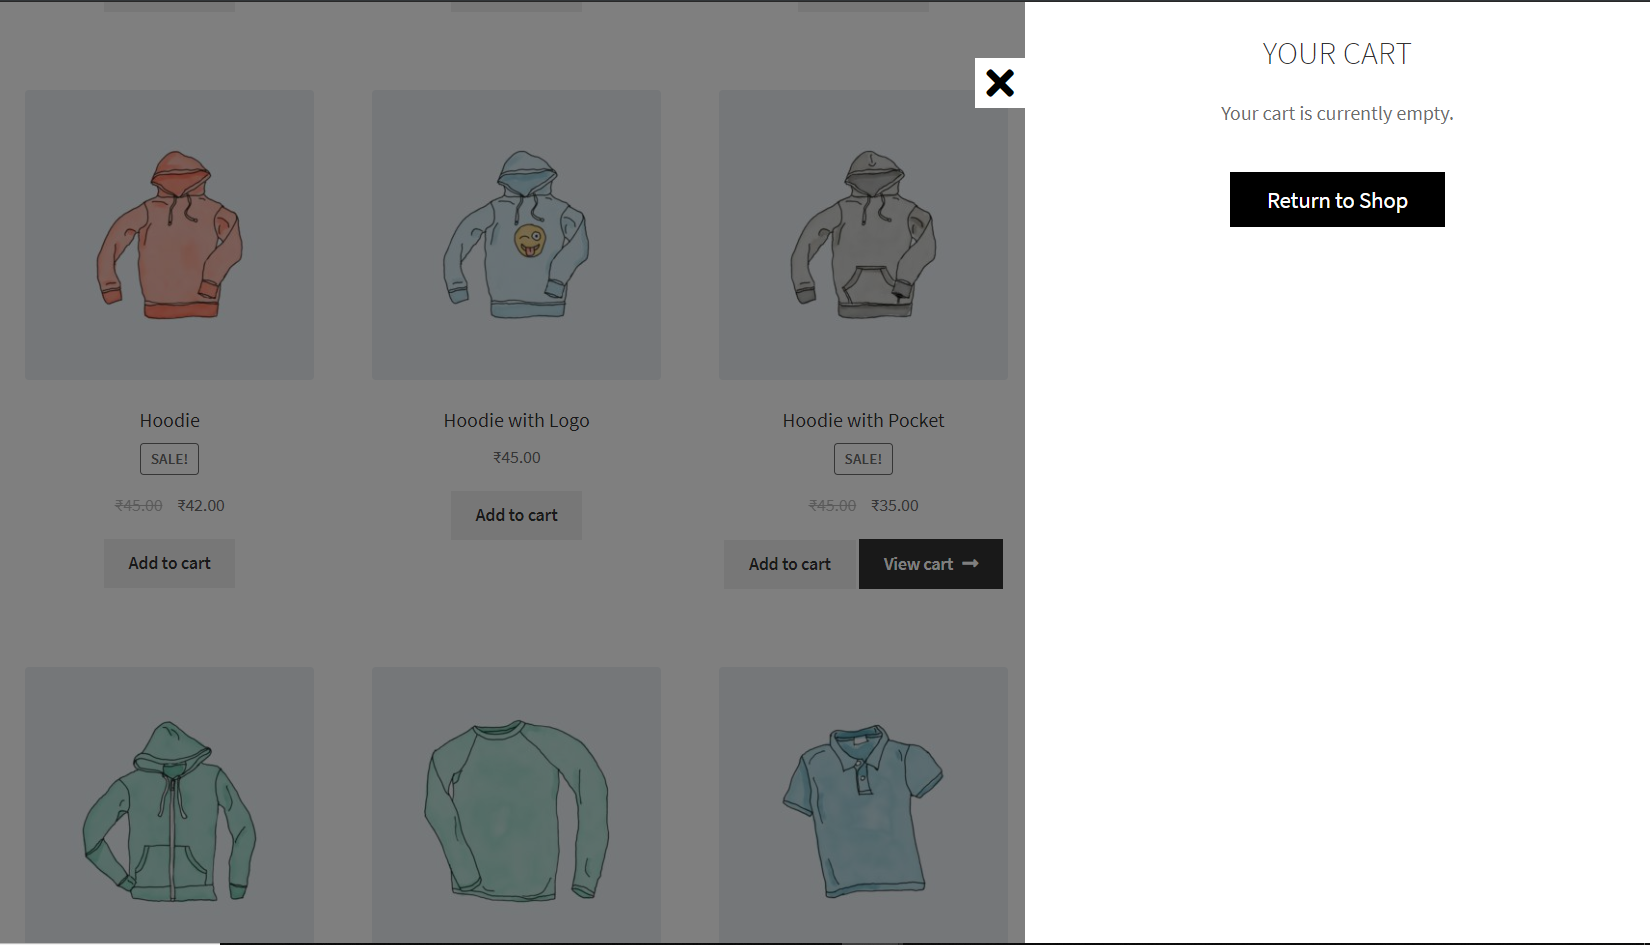 WooCommerce Smart Cart - Empty Cart